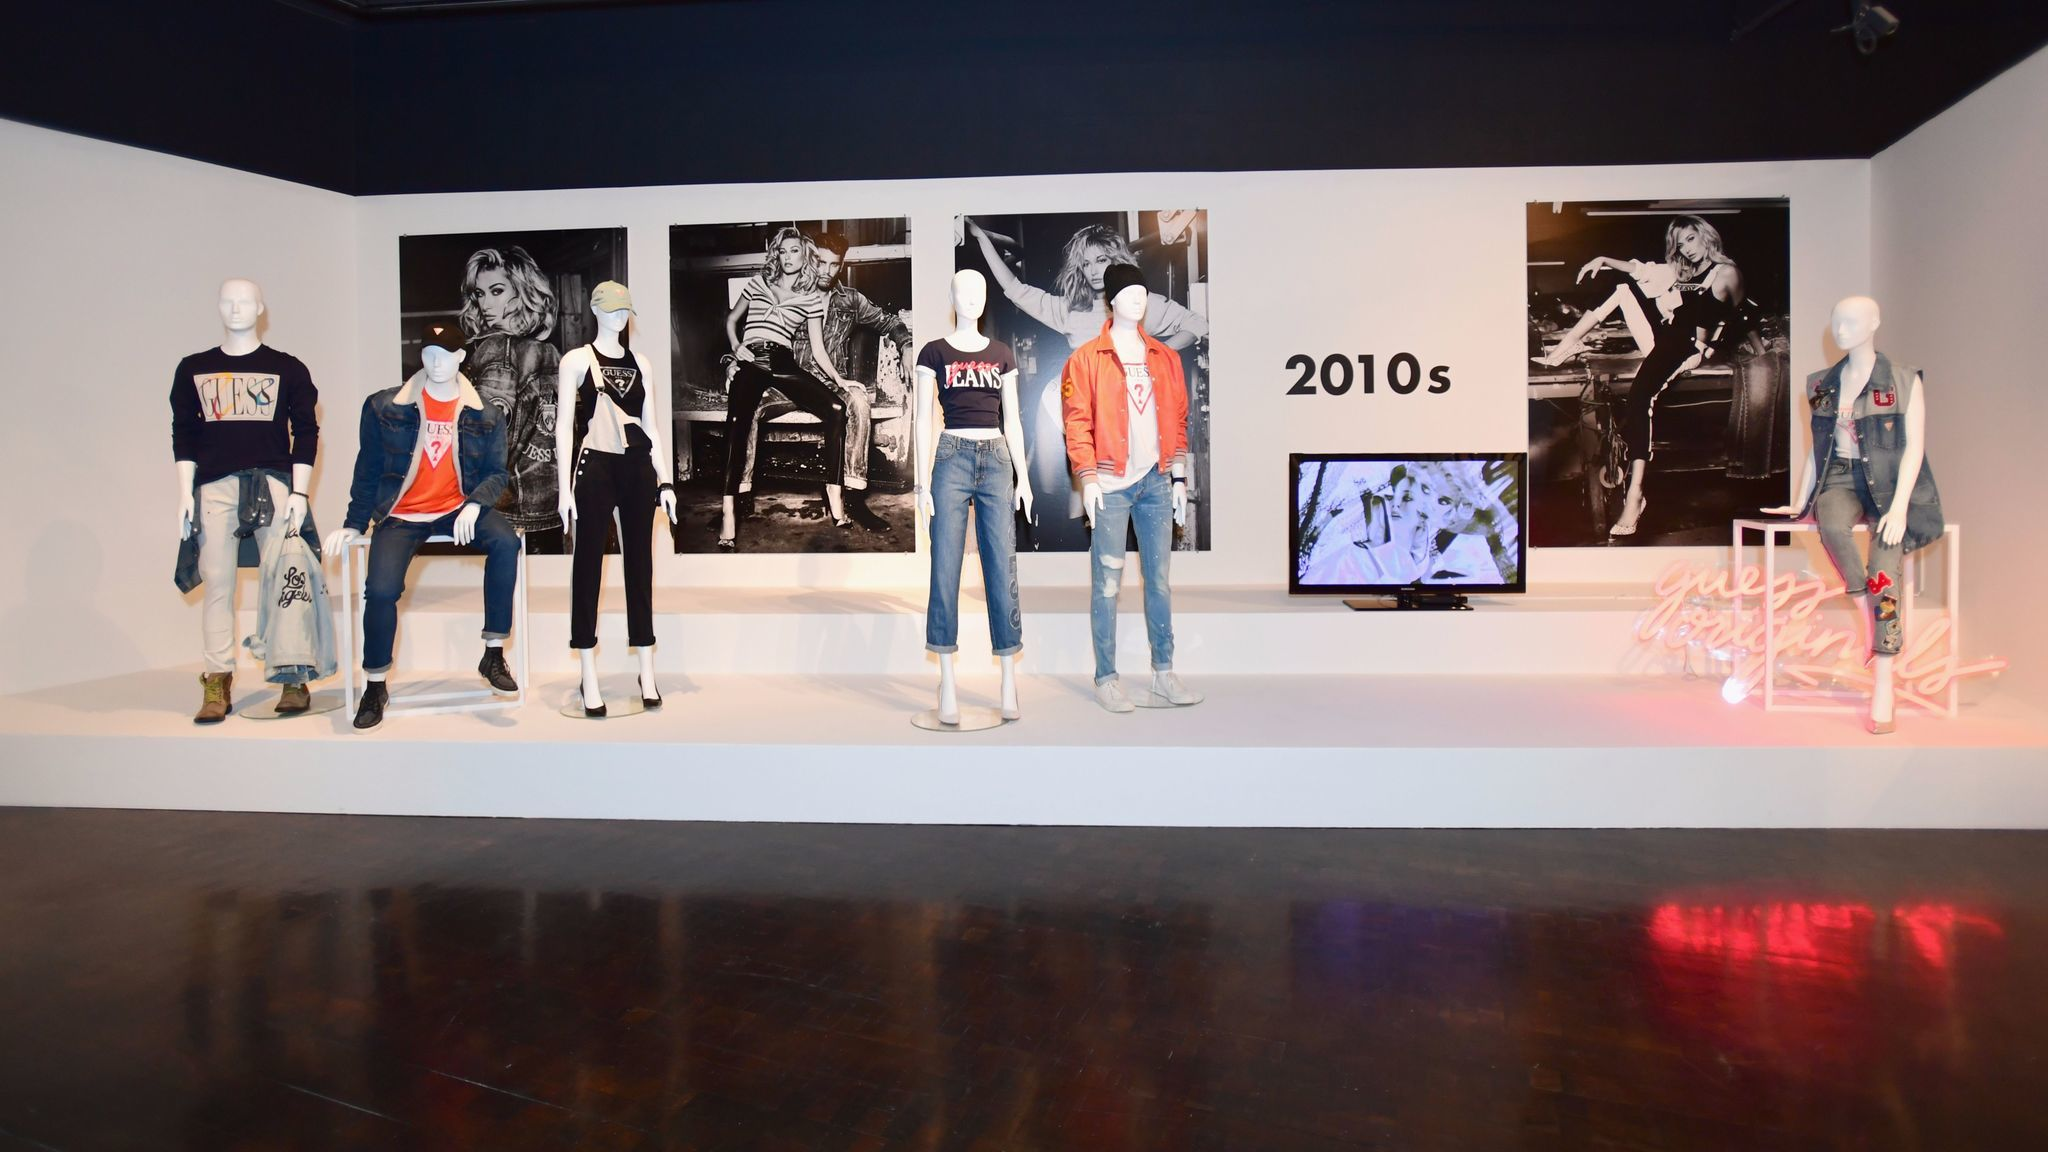 One part of the Guess exhibit showcases looks from each decade.